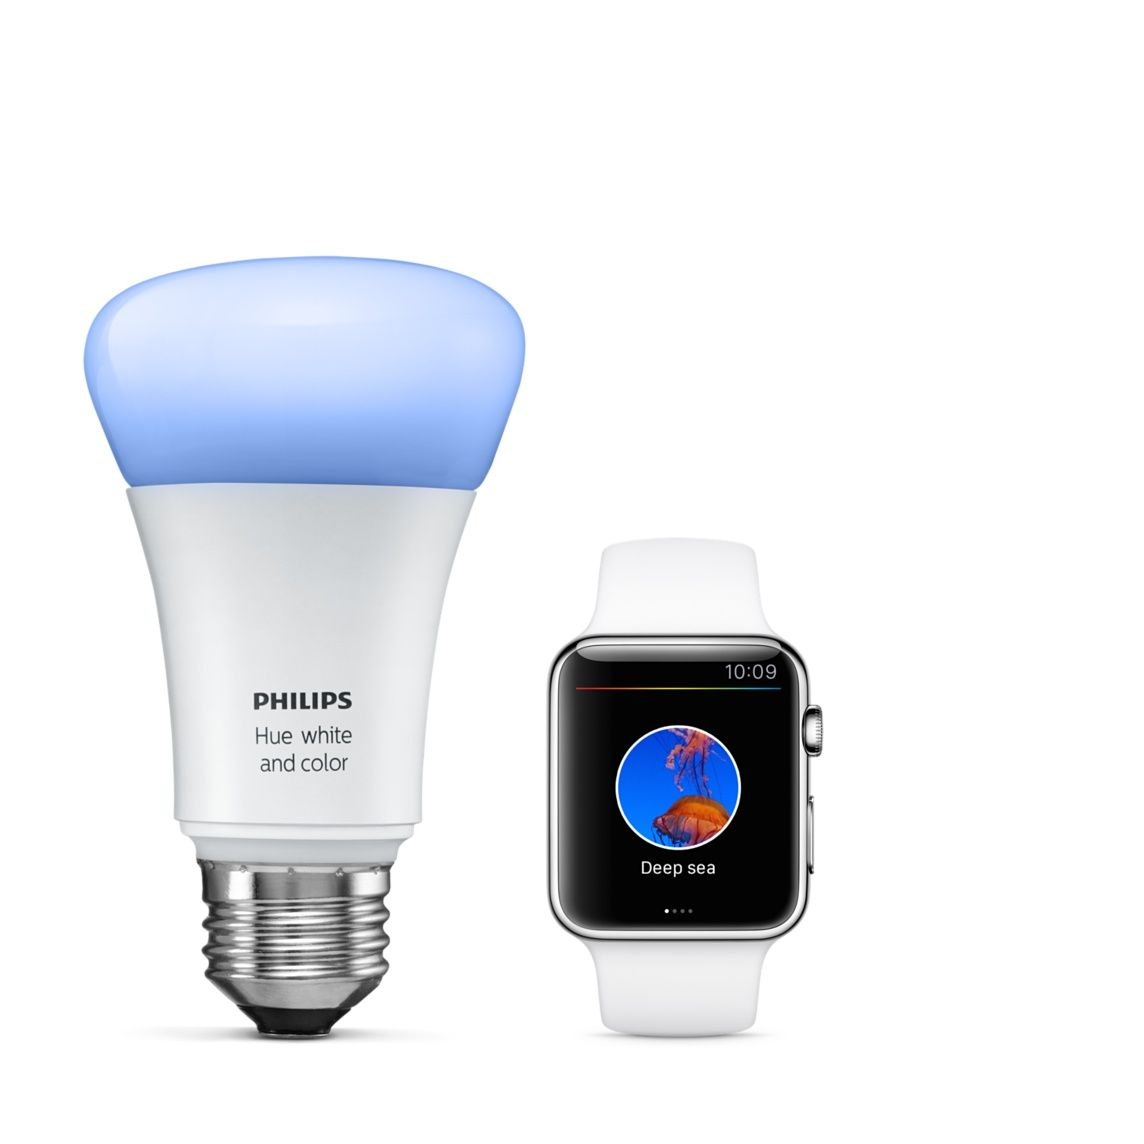 Inline 3 Hue philips, Color extensions